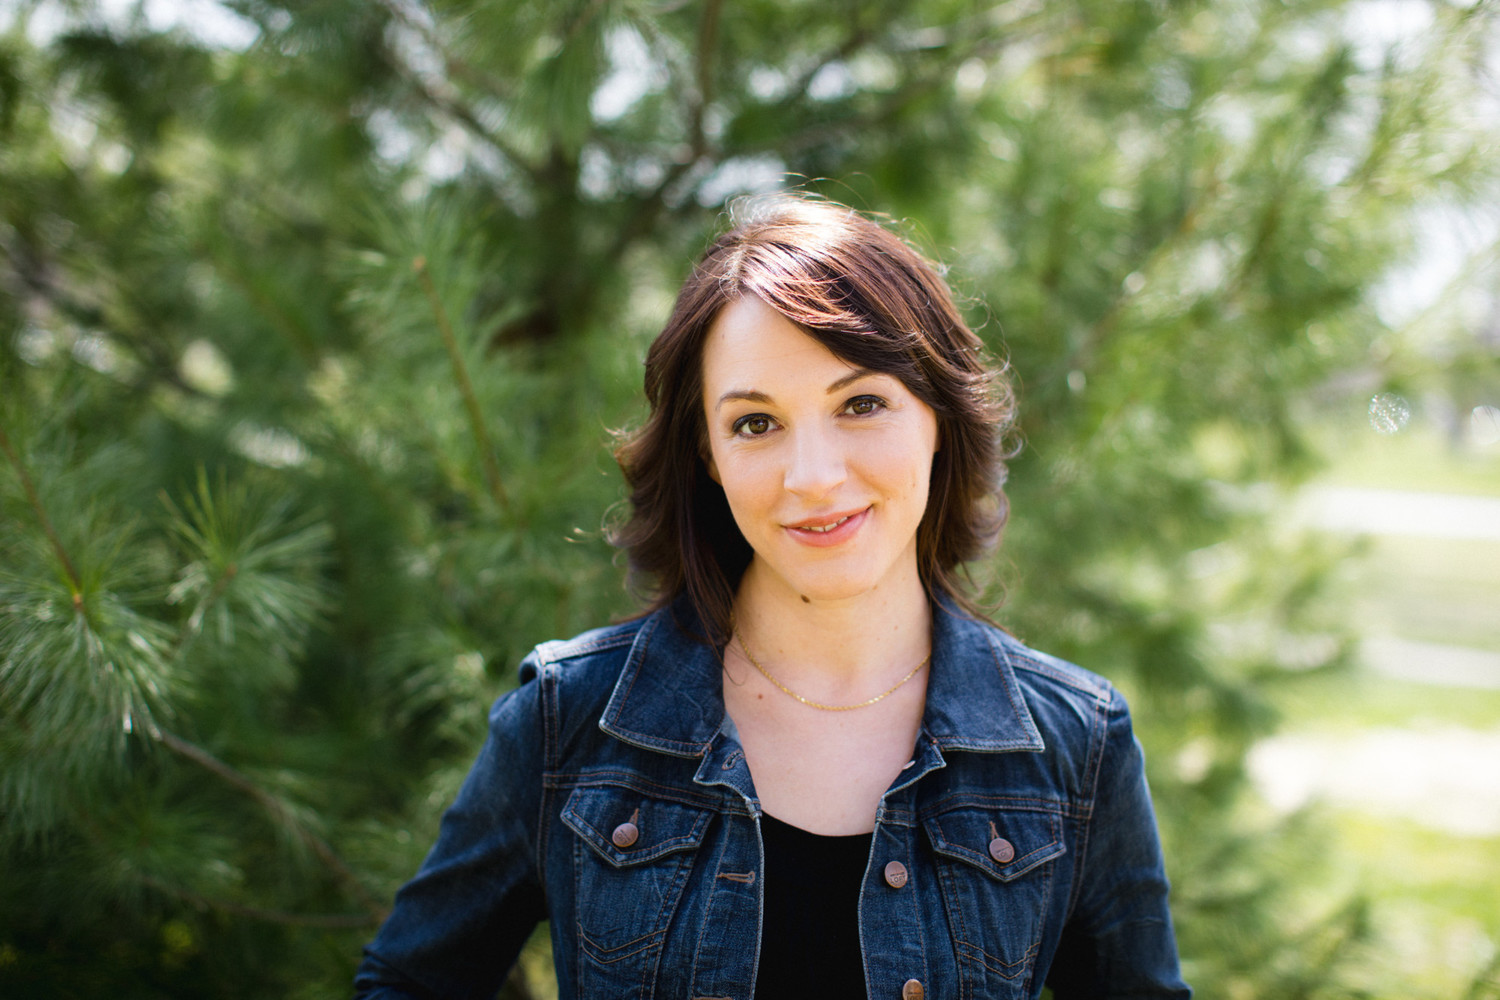 BWW Interview: Suzanne Withem of LITTLE WOMEN, THE MUSICAL at Chanticleer Theater, Council Bluffs